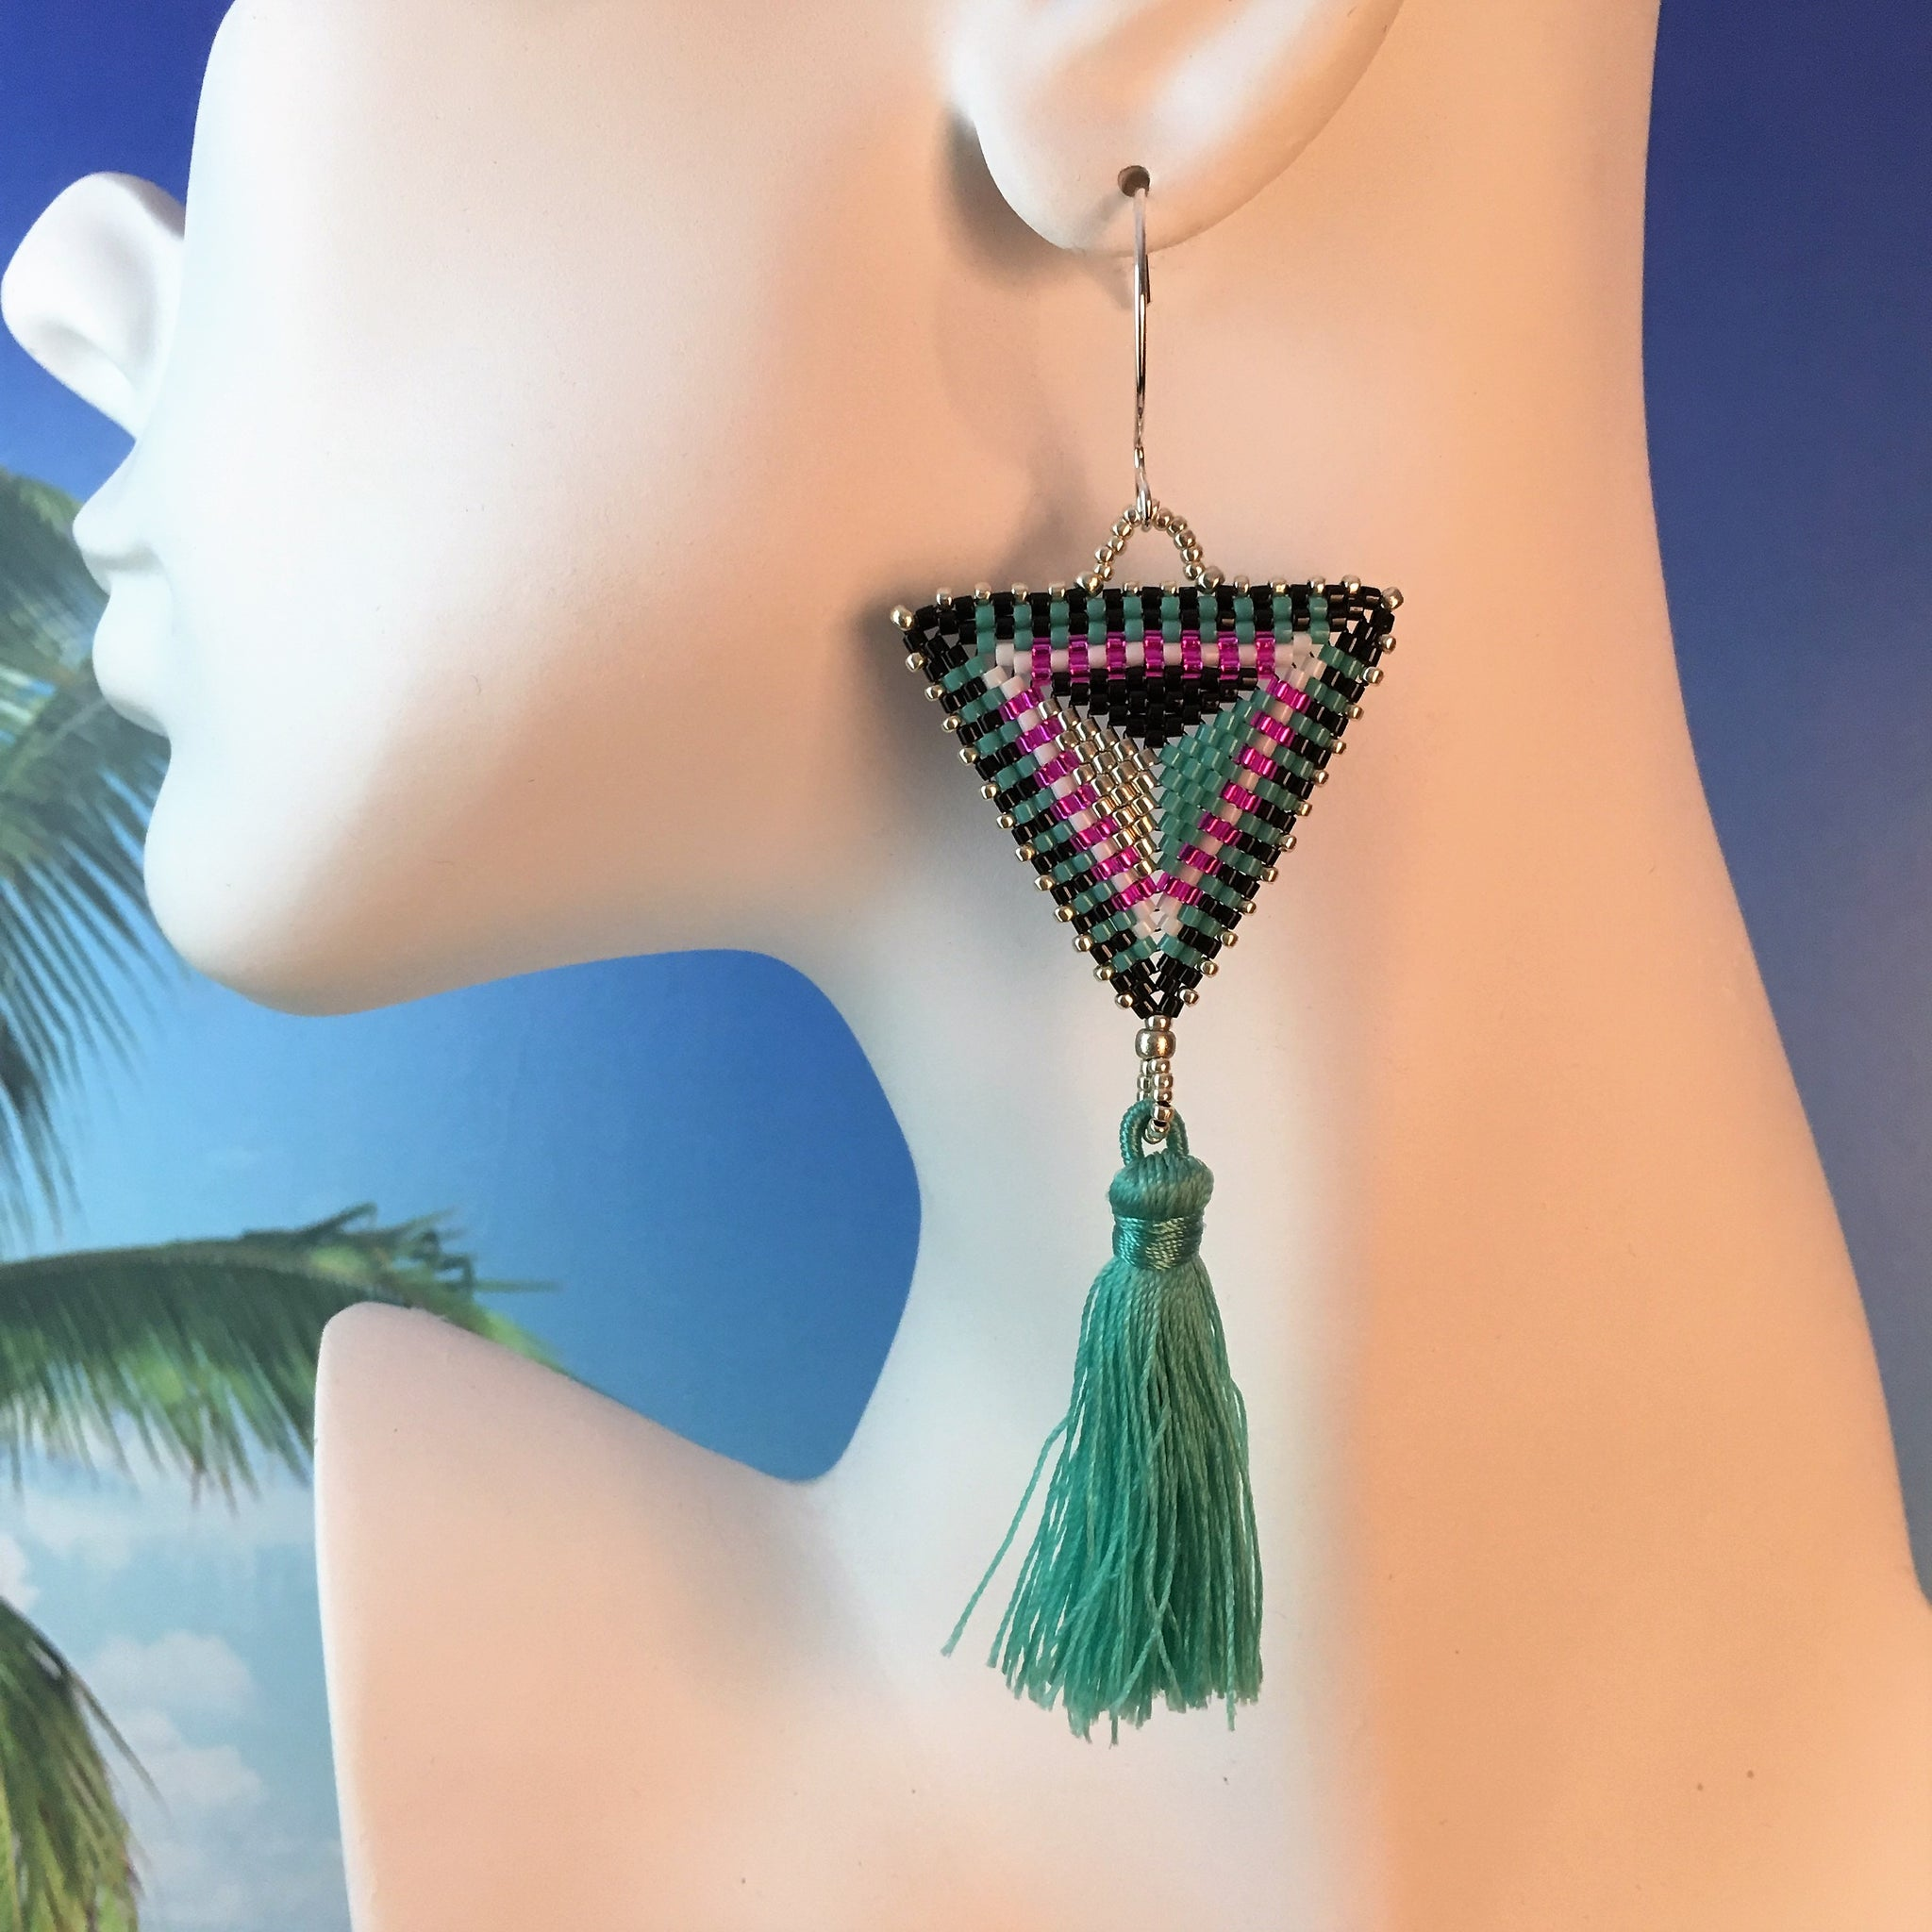 Triangle Tassel Earrings in Turquoise Black White and Fuchsia